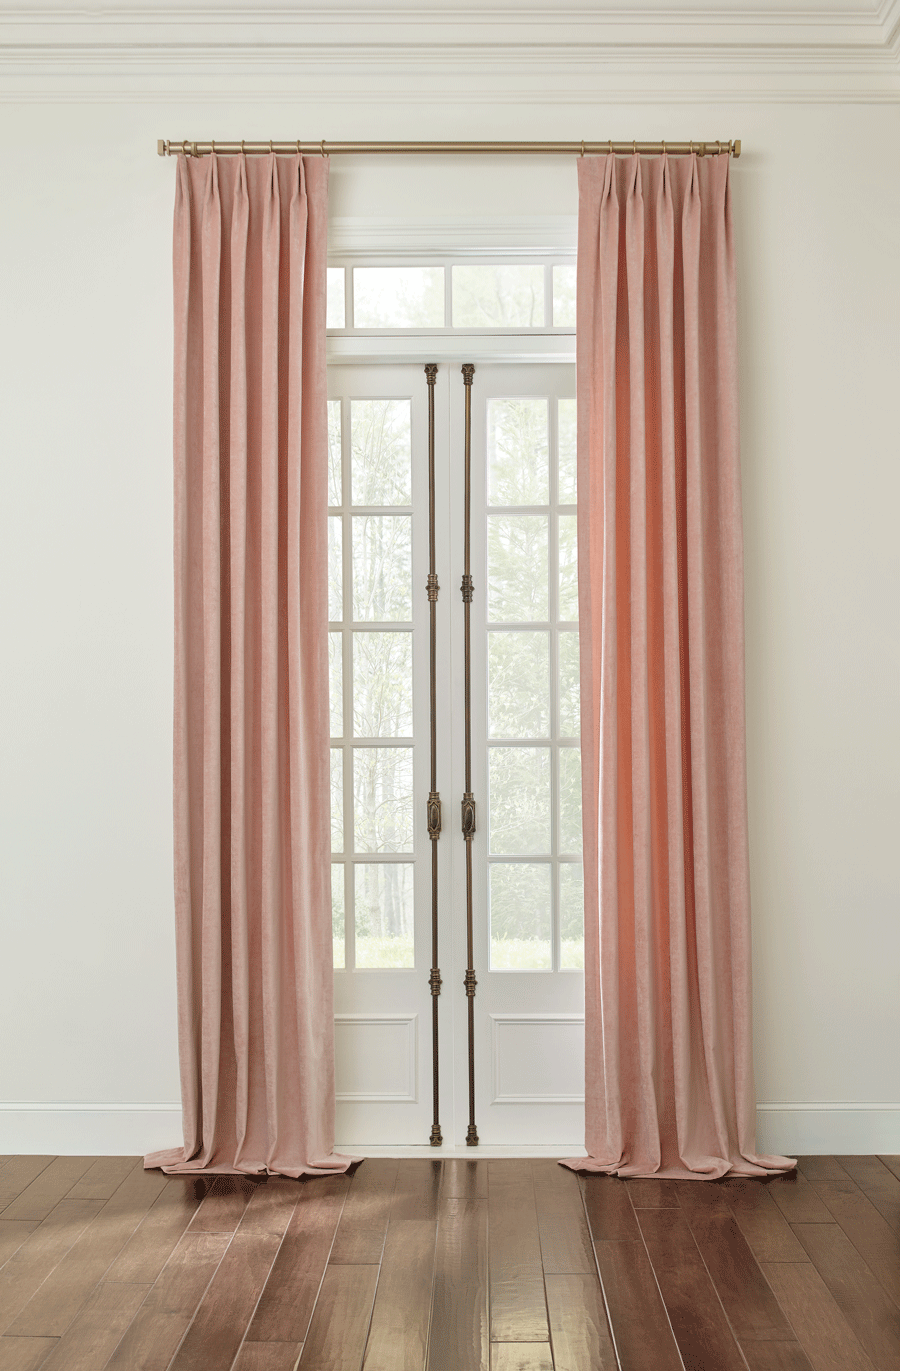 drapes on french doors with gold hardware that puddle on the floor